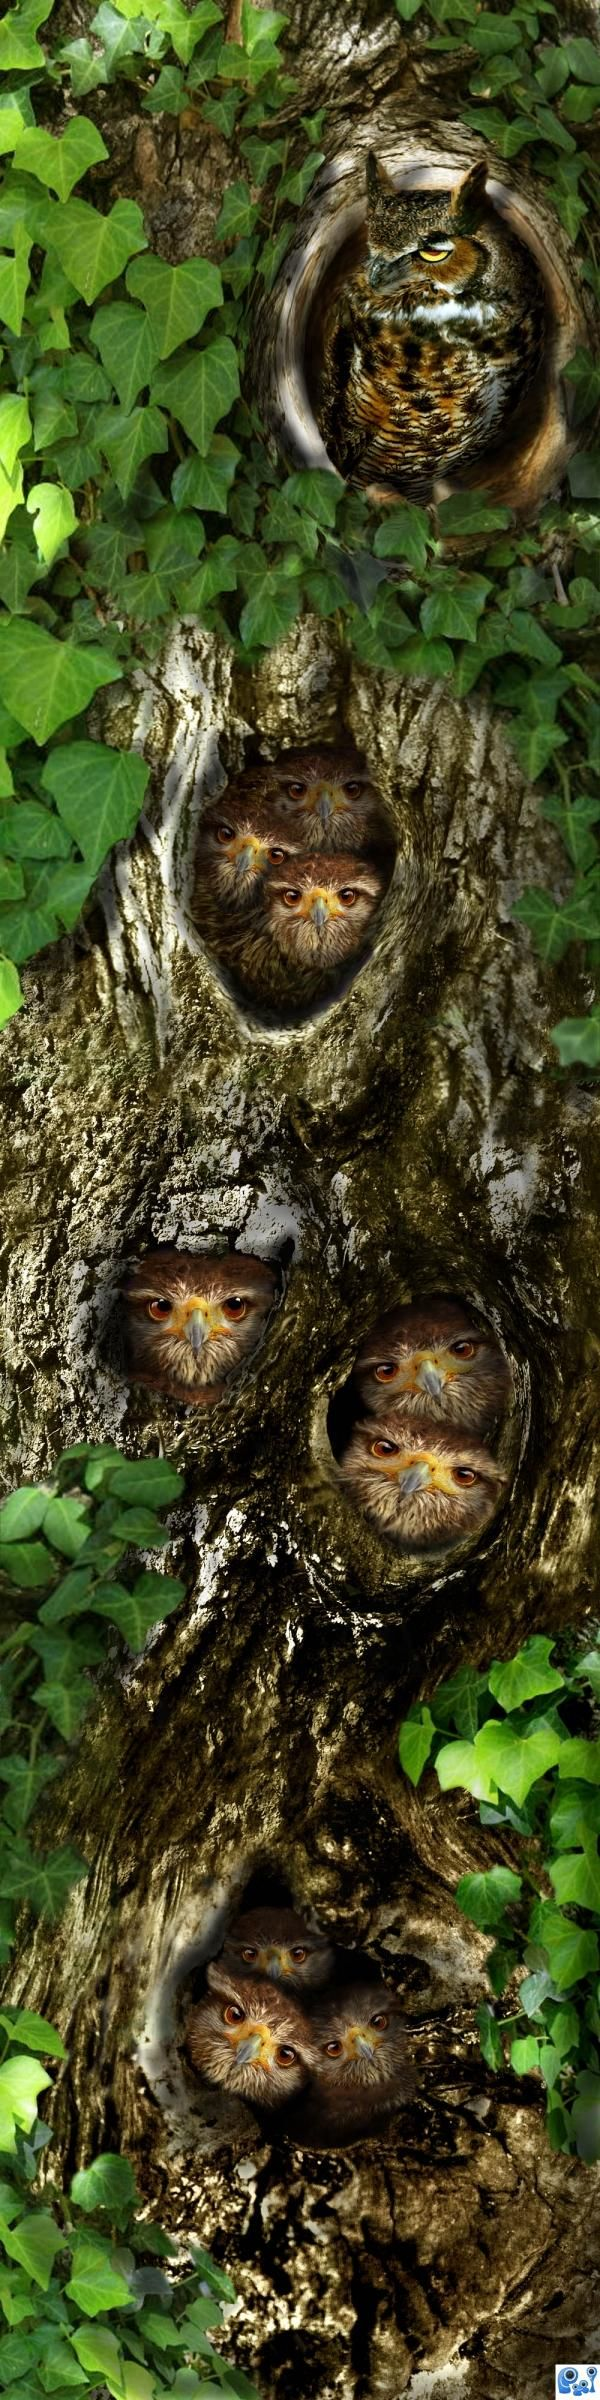 owls in tree holes